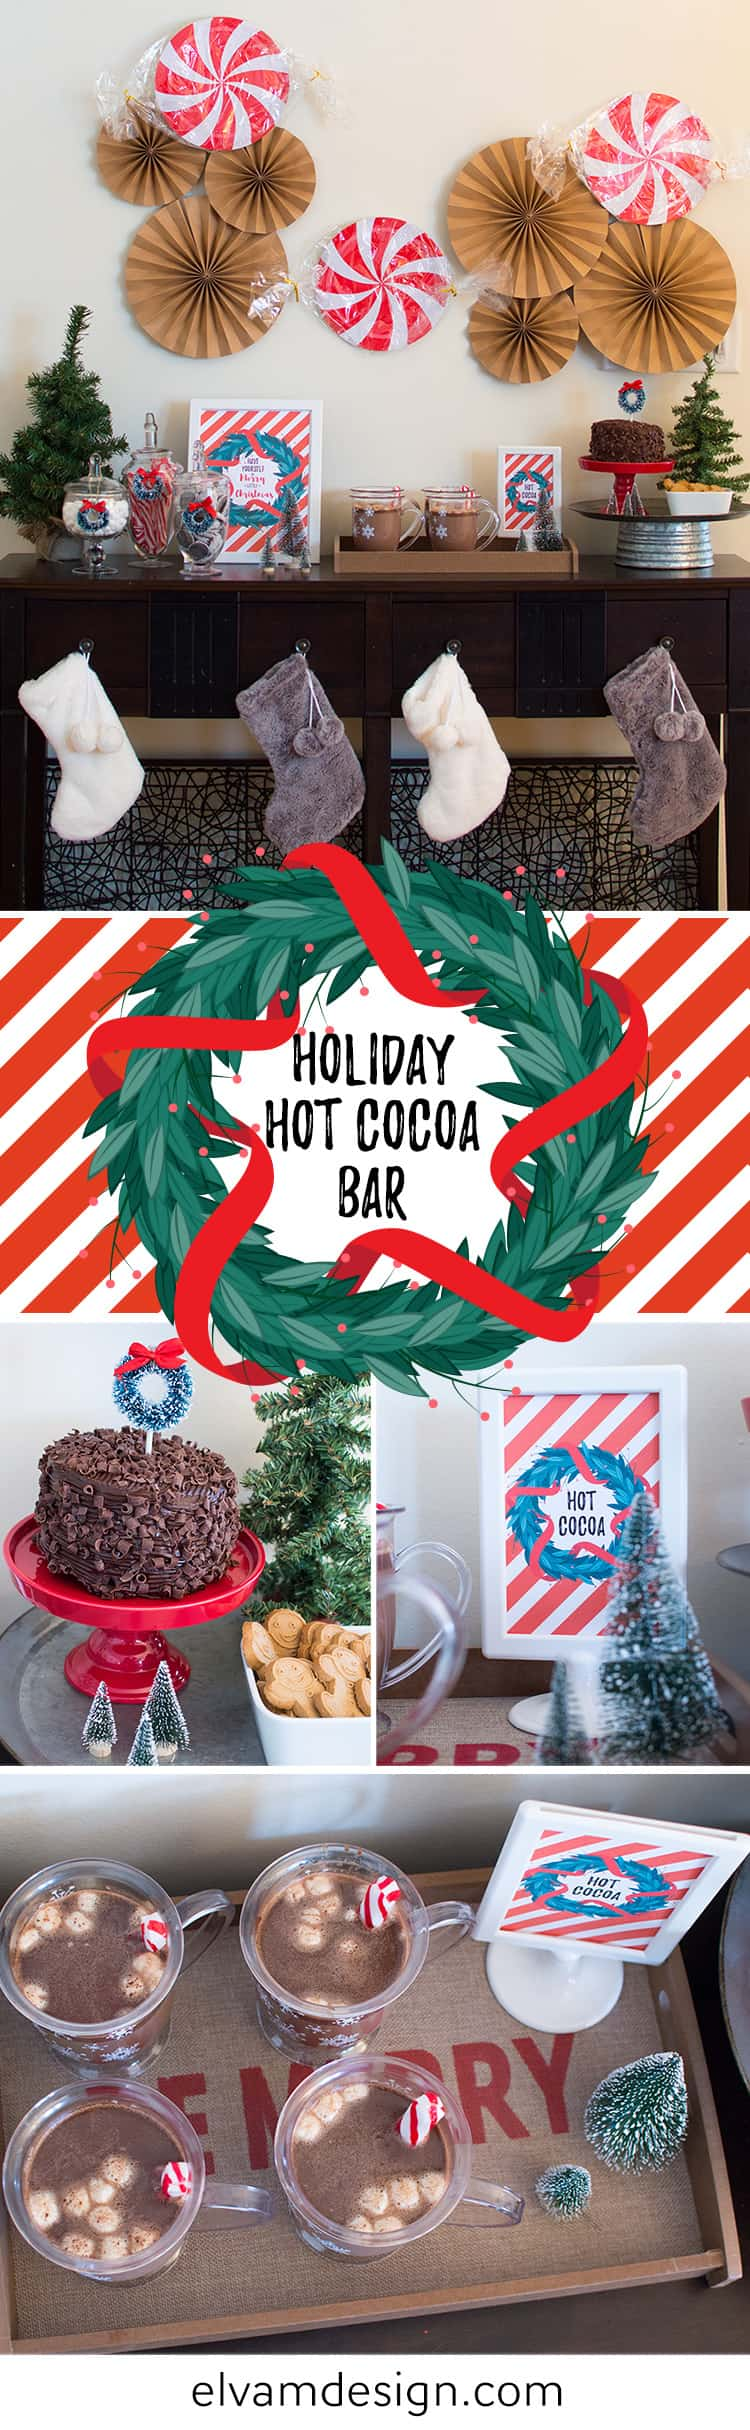 Holiday Hot Cocoa Bar by Elva M Design Studio